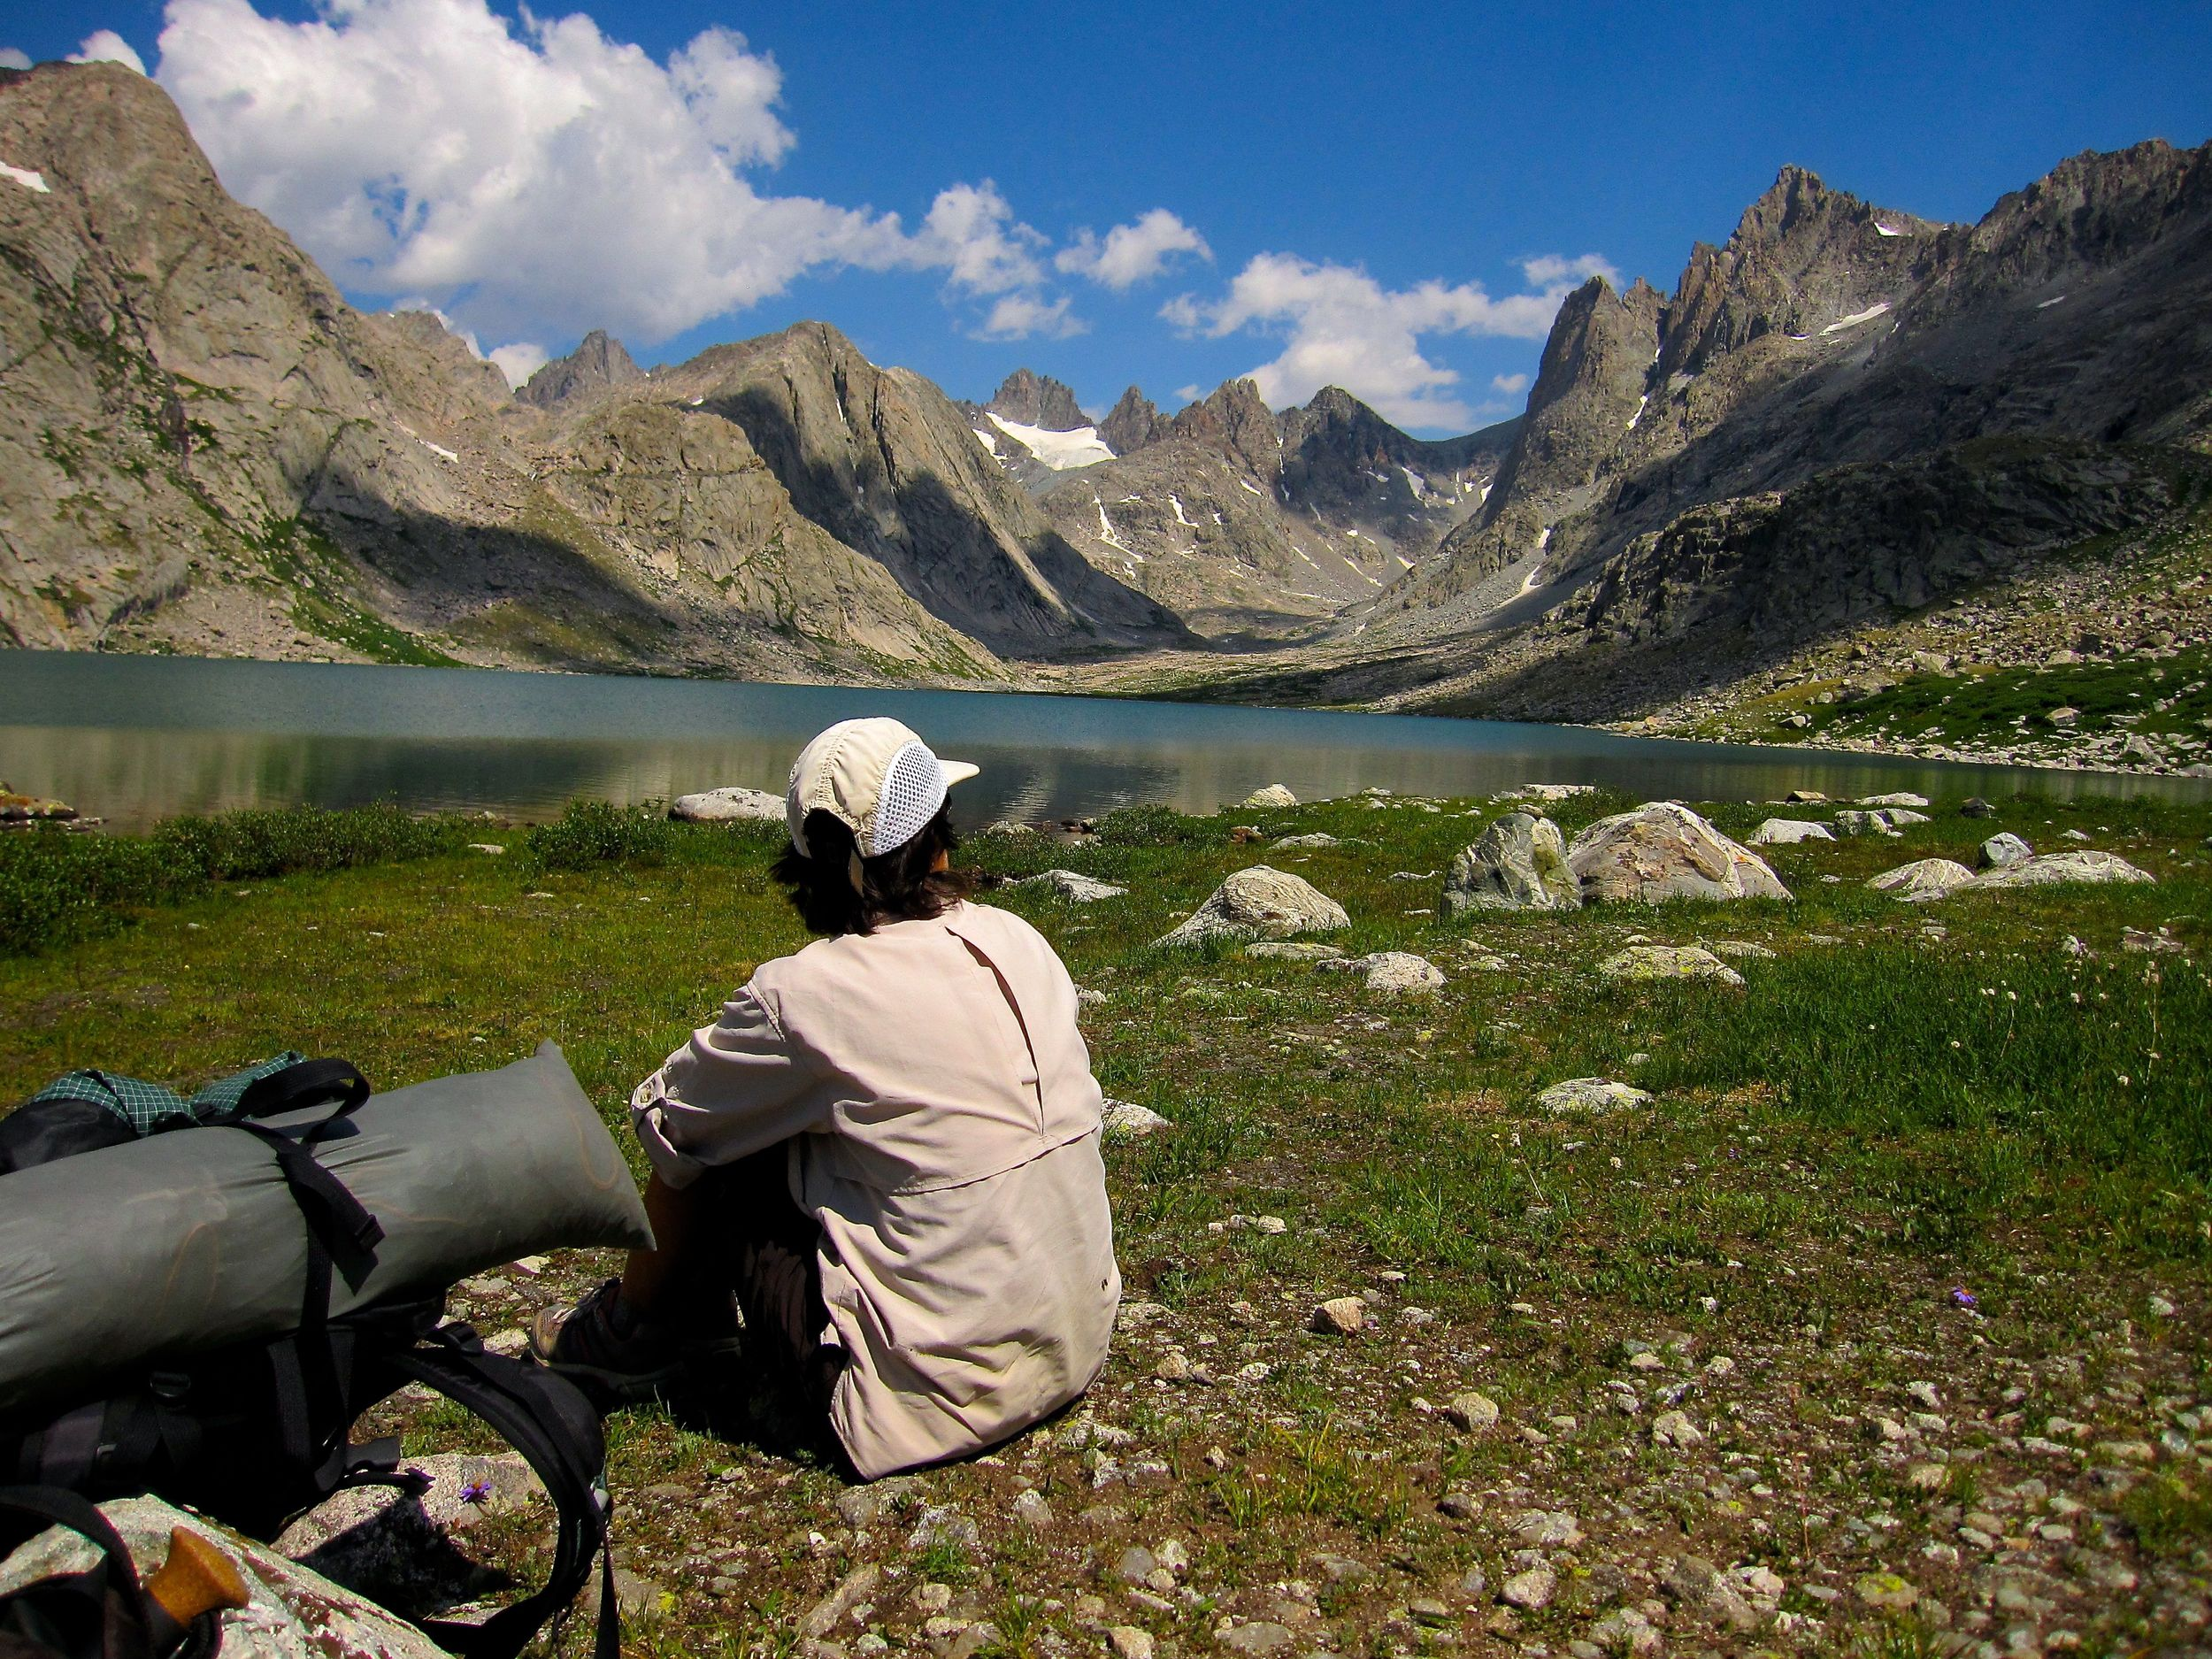 In the beautiful but usually crowded Titcomb Basin.